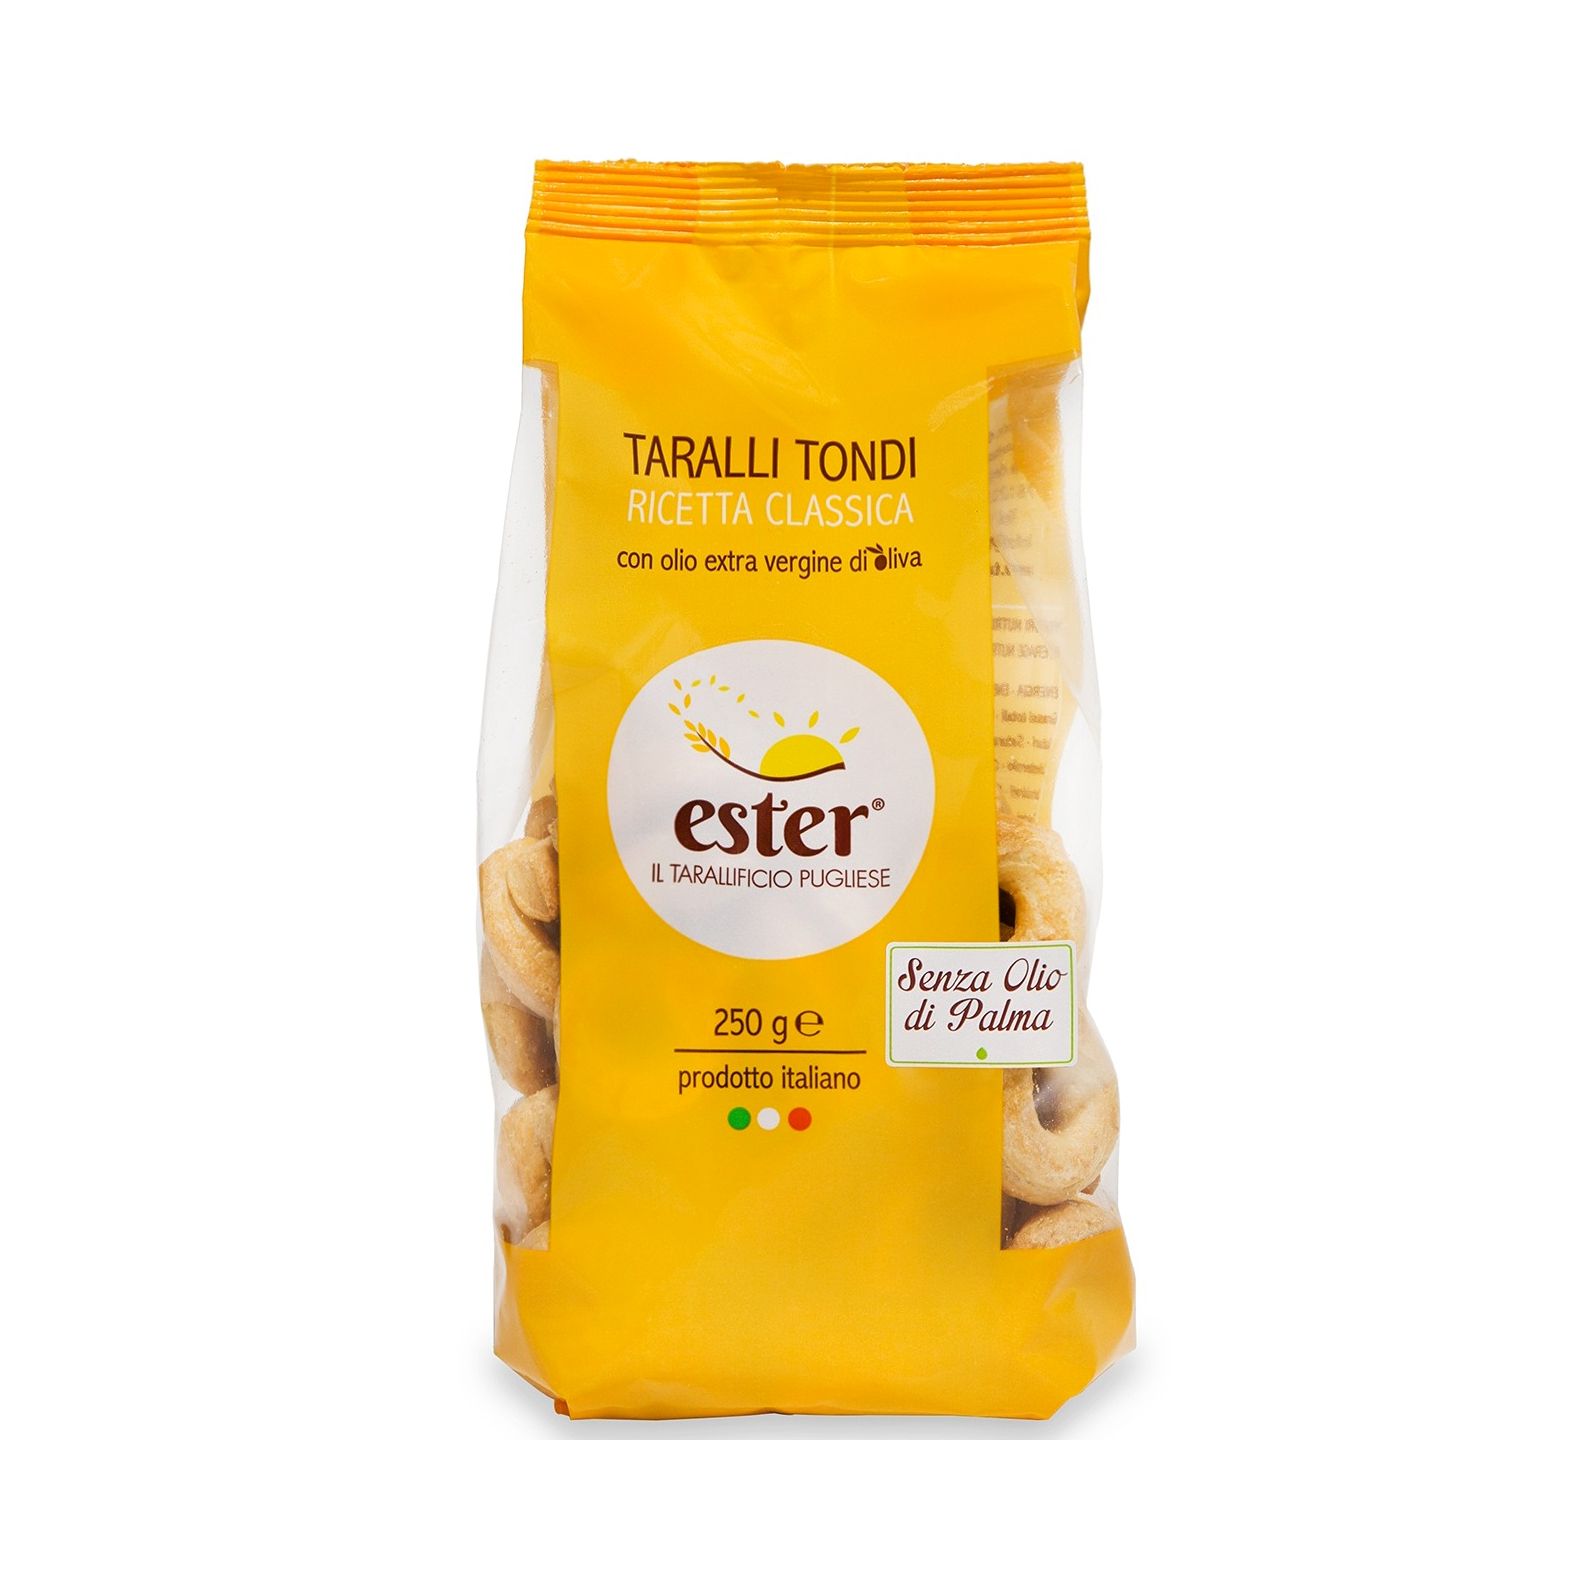 Ester Plain Taralli Tondi Baked Product Italy wheat,salted snack,biscuit